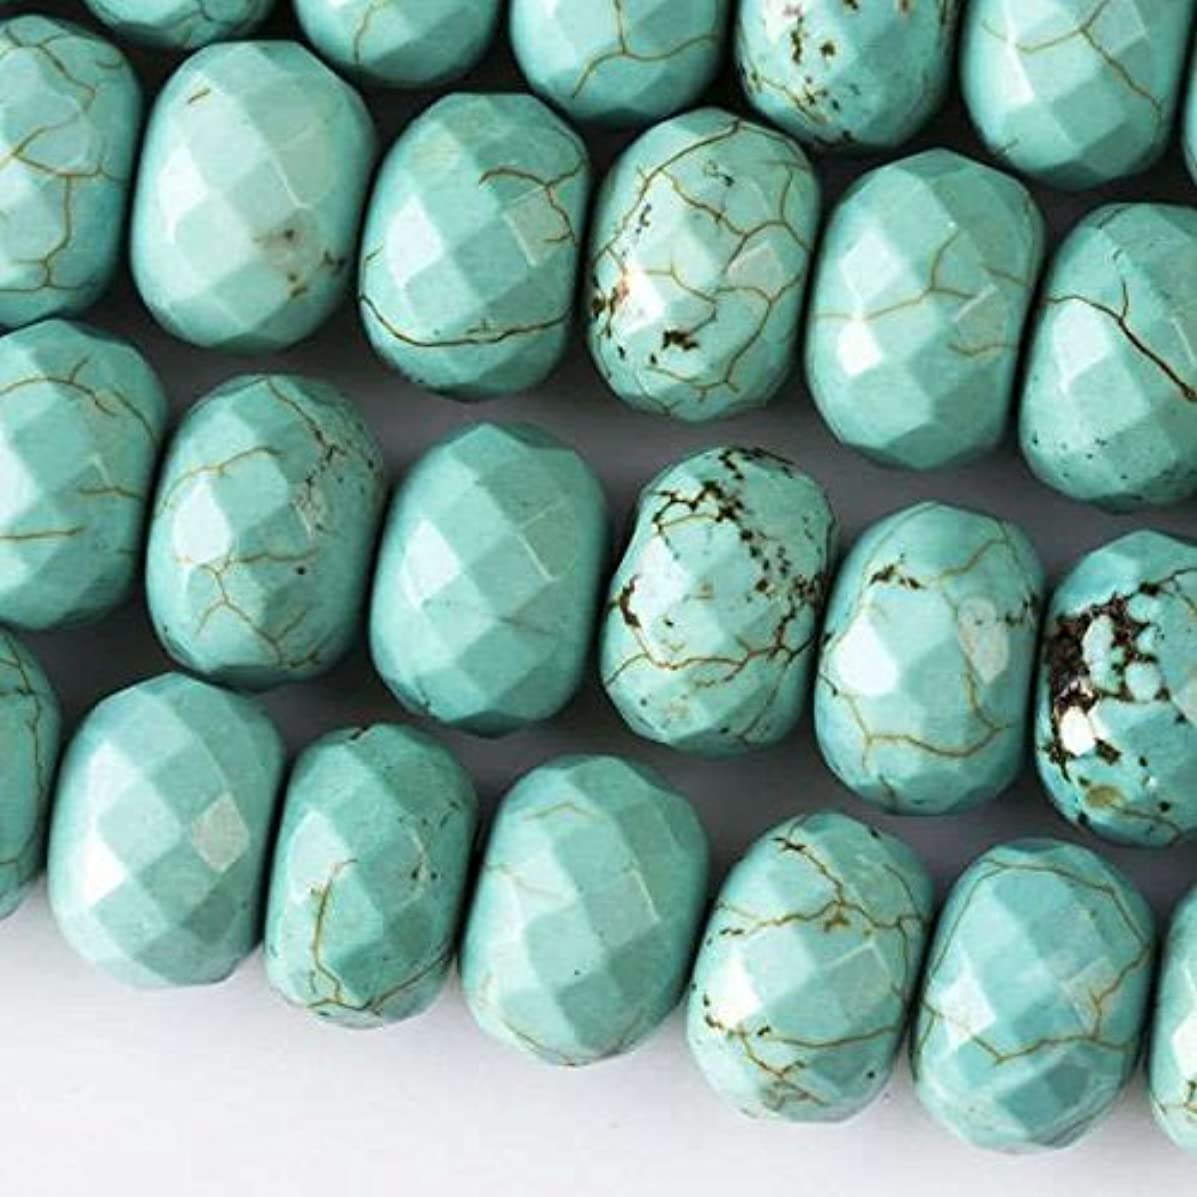 Cherry Blossom Beads Large Hole 2.5mm Drilled Turquoise Howlite Beads 8x12mm Faceted Rondelle - 8 Inch Strand